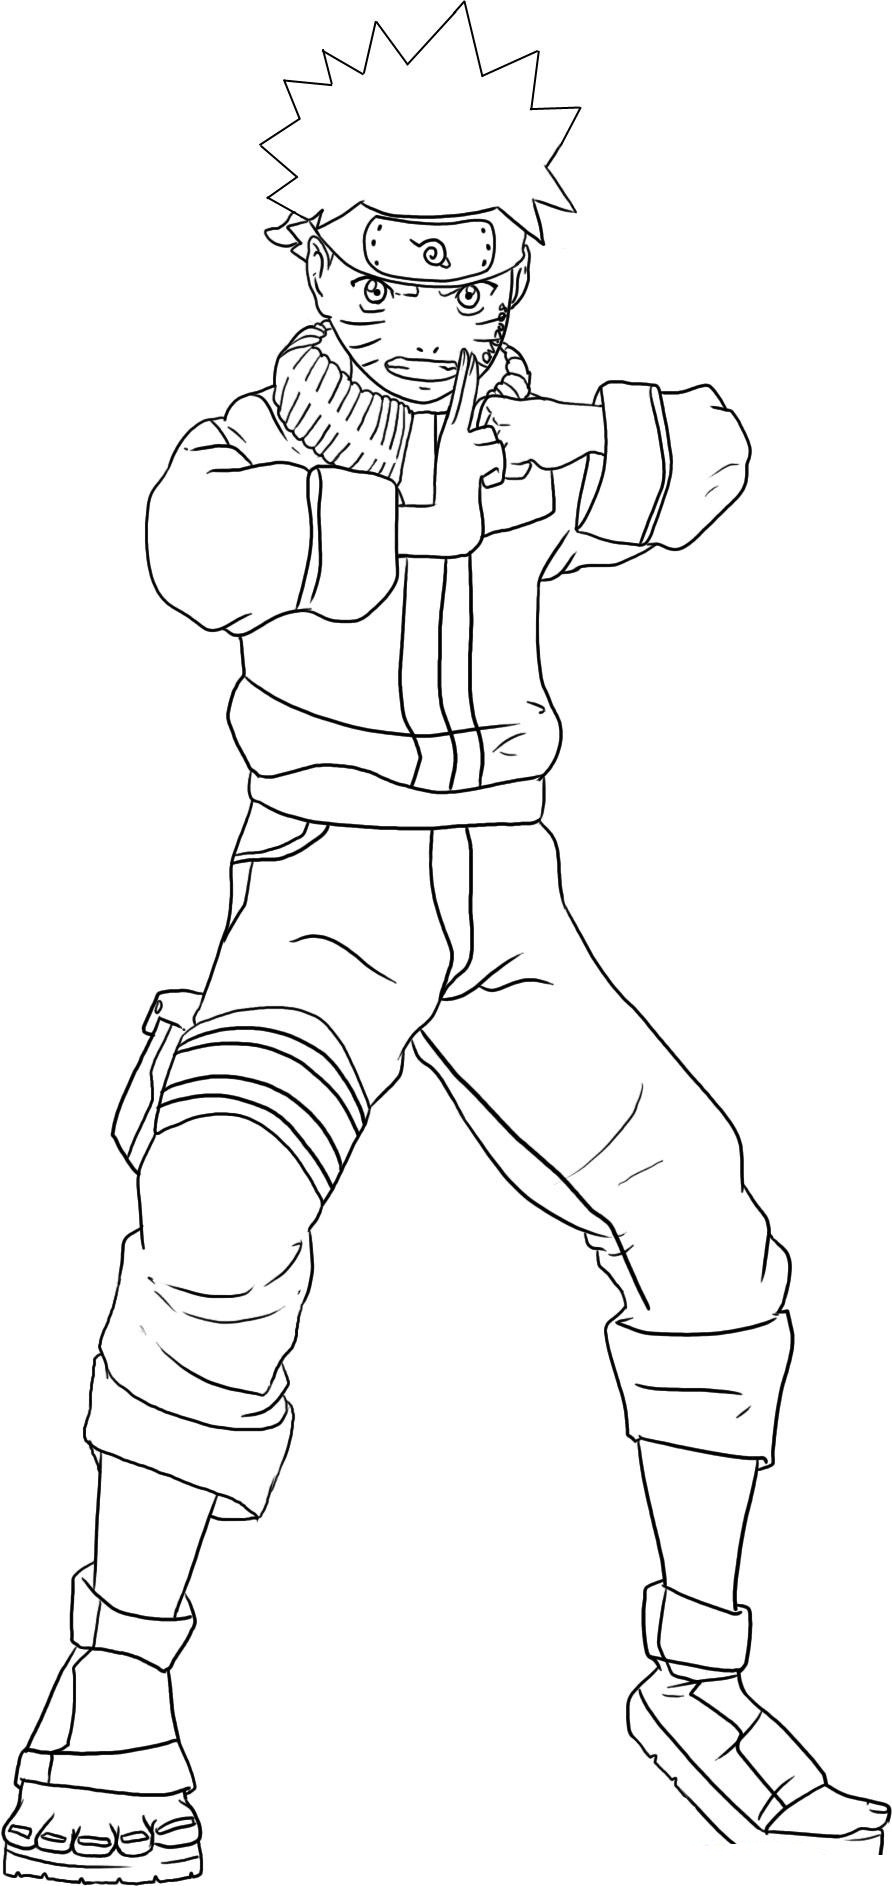 naruto shippuden coloring book printable naruto coloring pages to get your kids occupied shippuden coloring naruto book